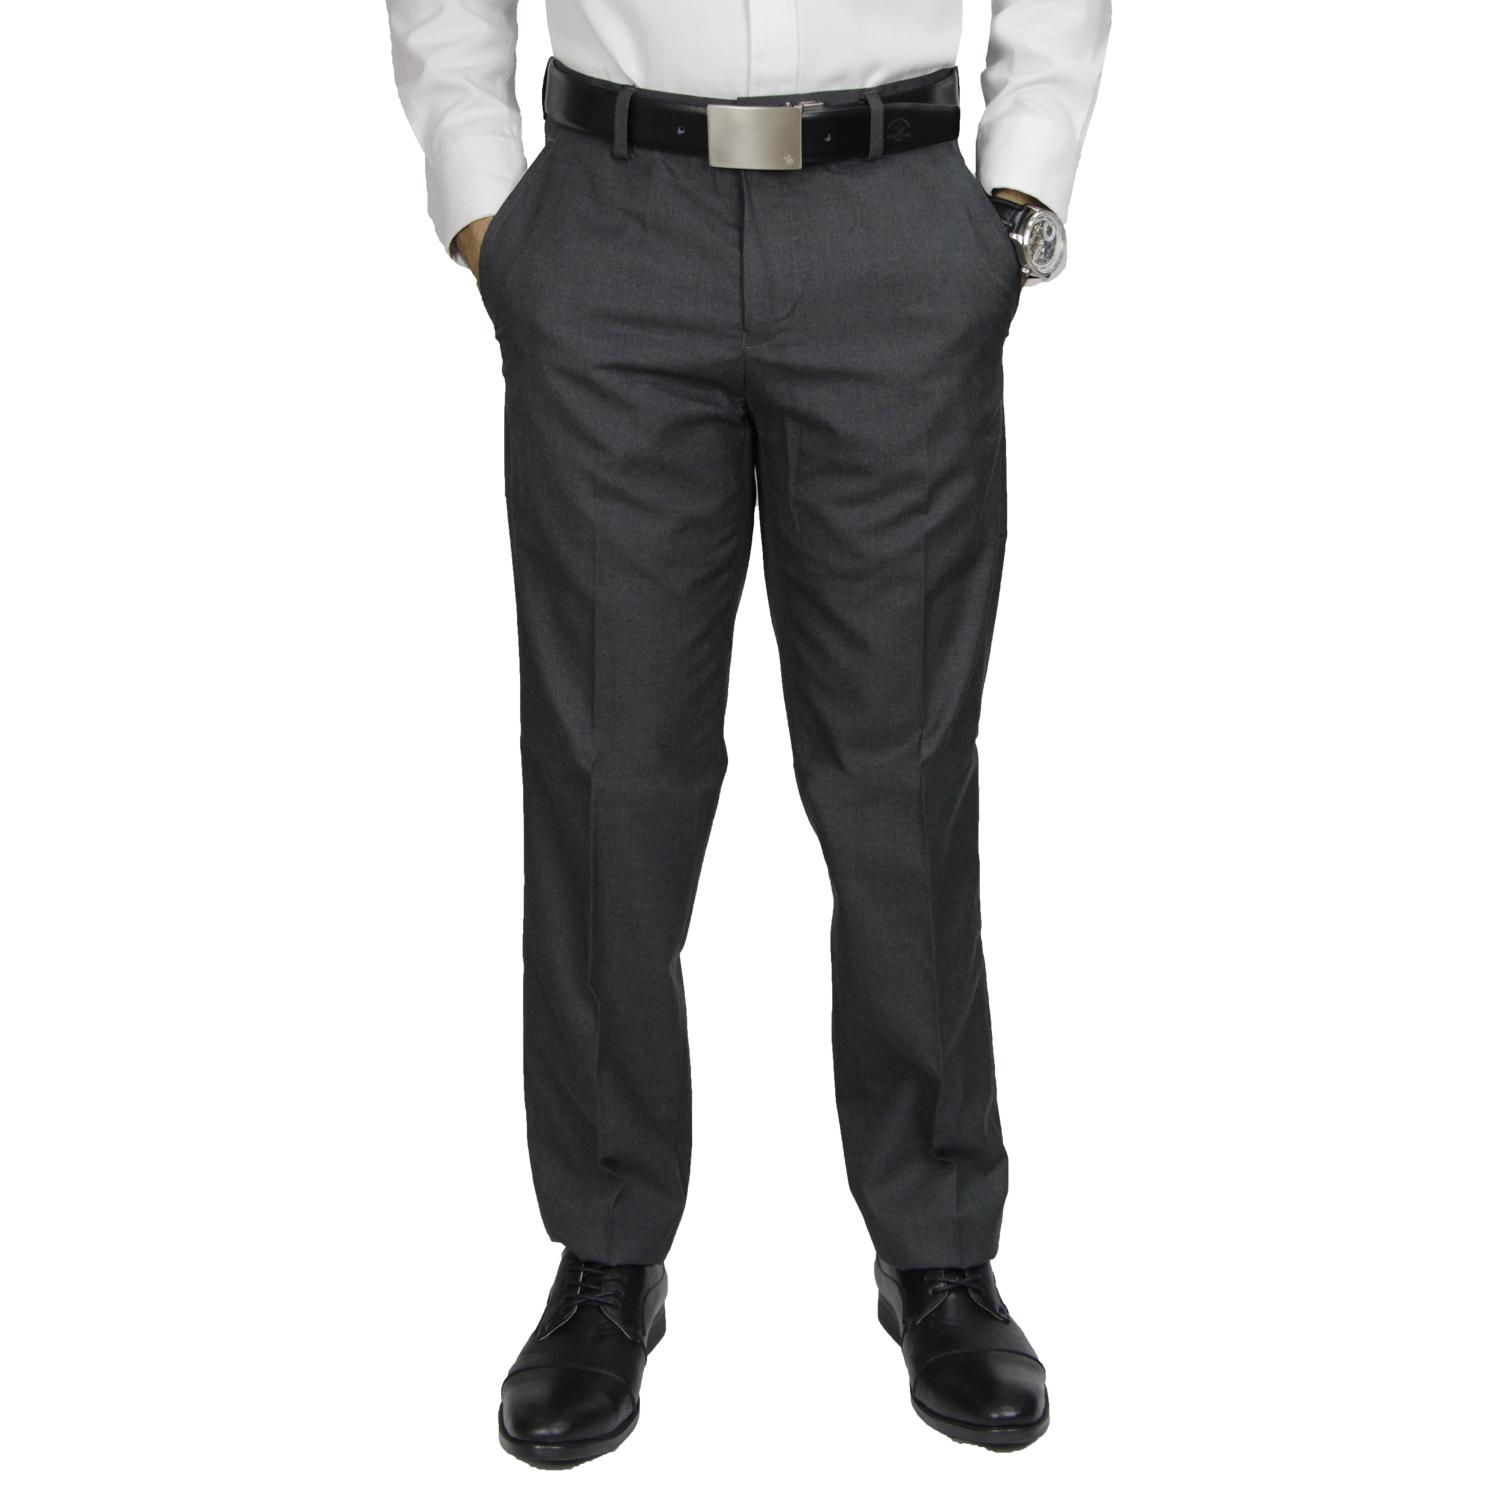 PROFILE by IDENTITY - Mens Corporate Collection Office Wear Formal Trouser  Suit Pants ba26e15057